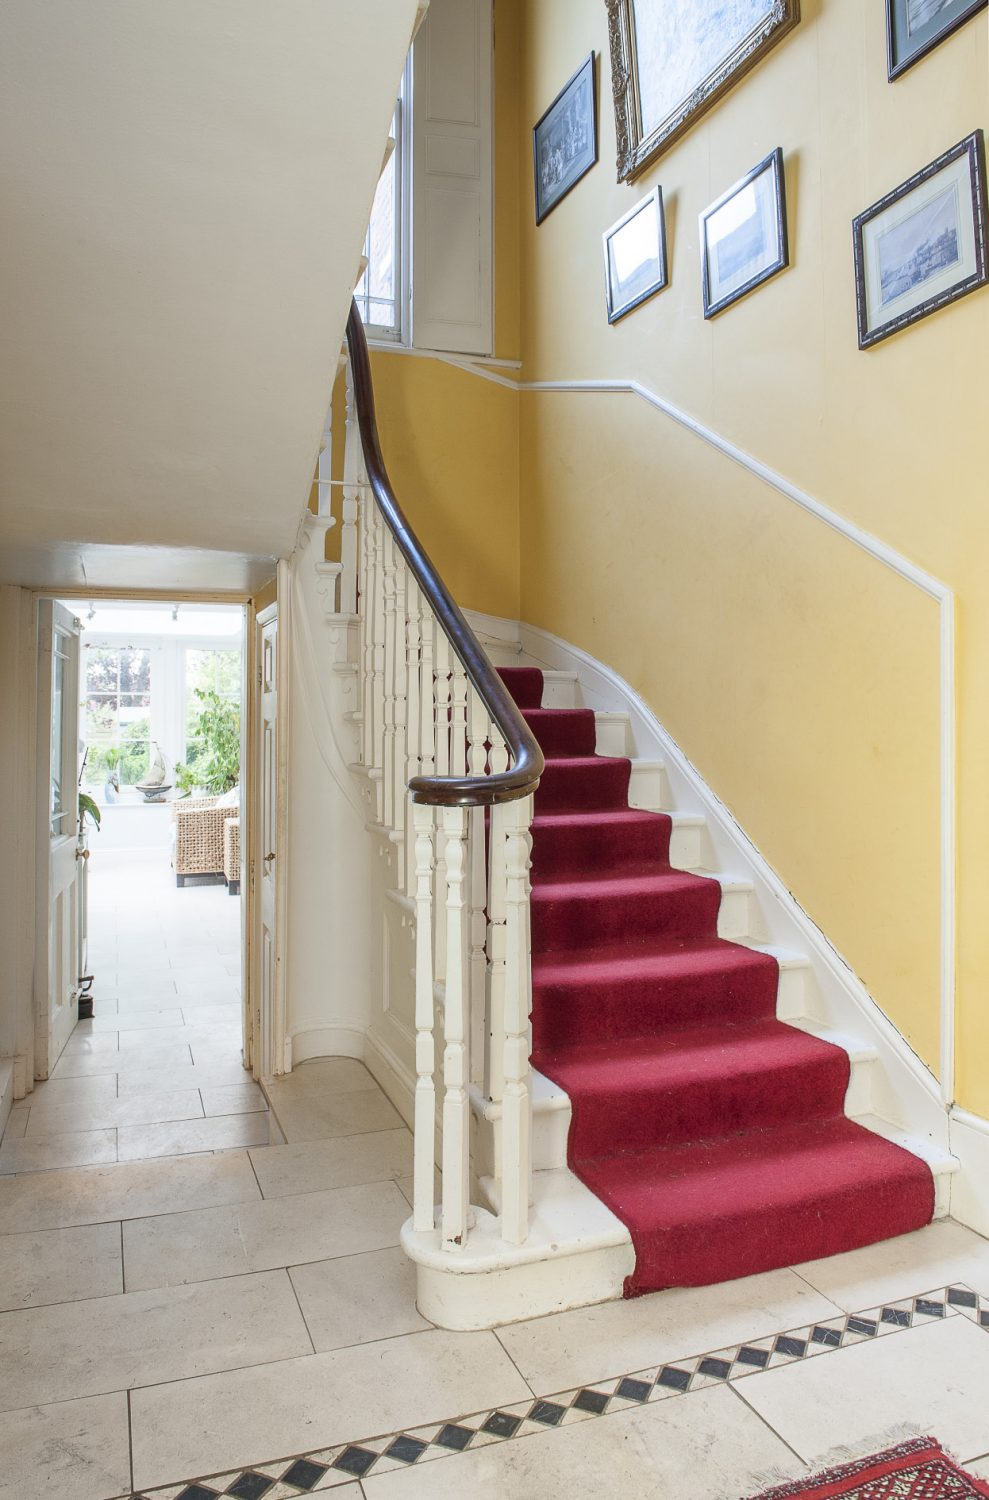 The sunny yellow of the hallway continues up to the soaring ceiling of the landing